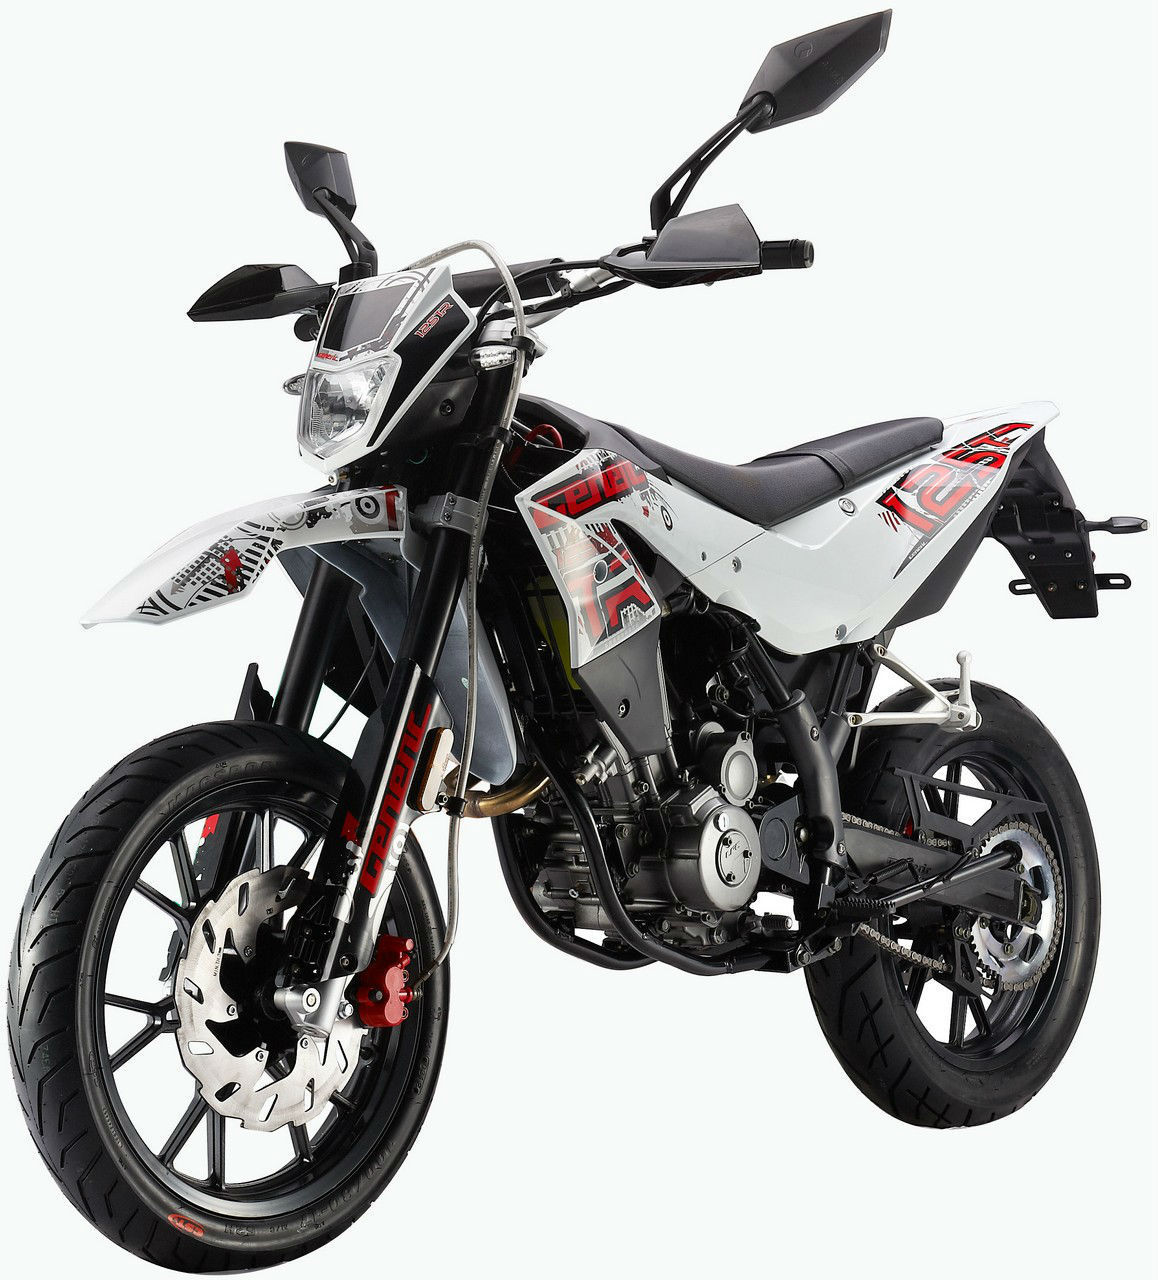 ksr moto tr 125 sm 125cc supermoto learner legal. Black Bedroom Furniture Sets. Home Design Ideas